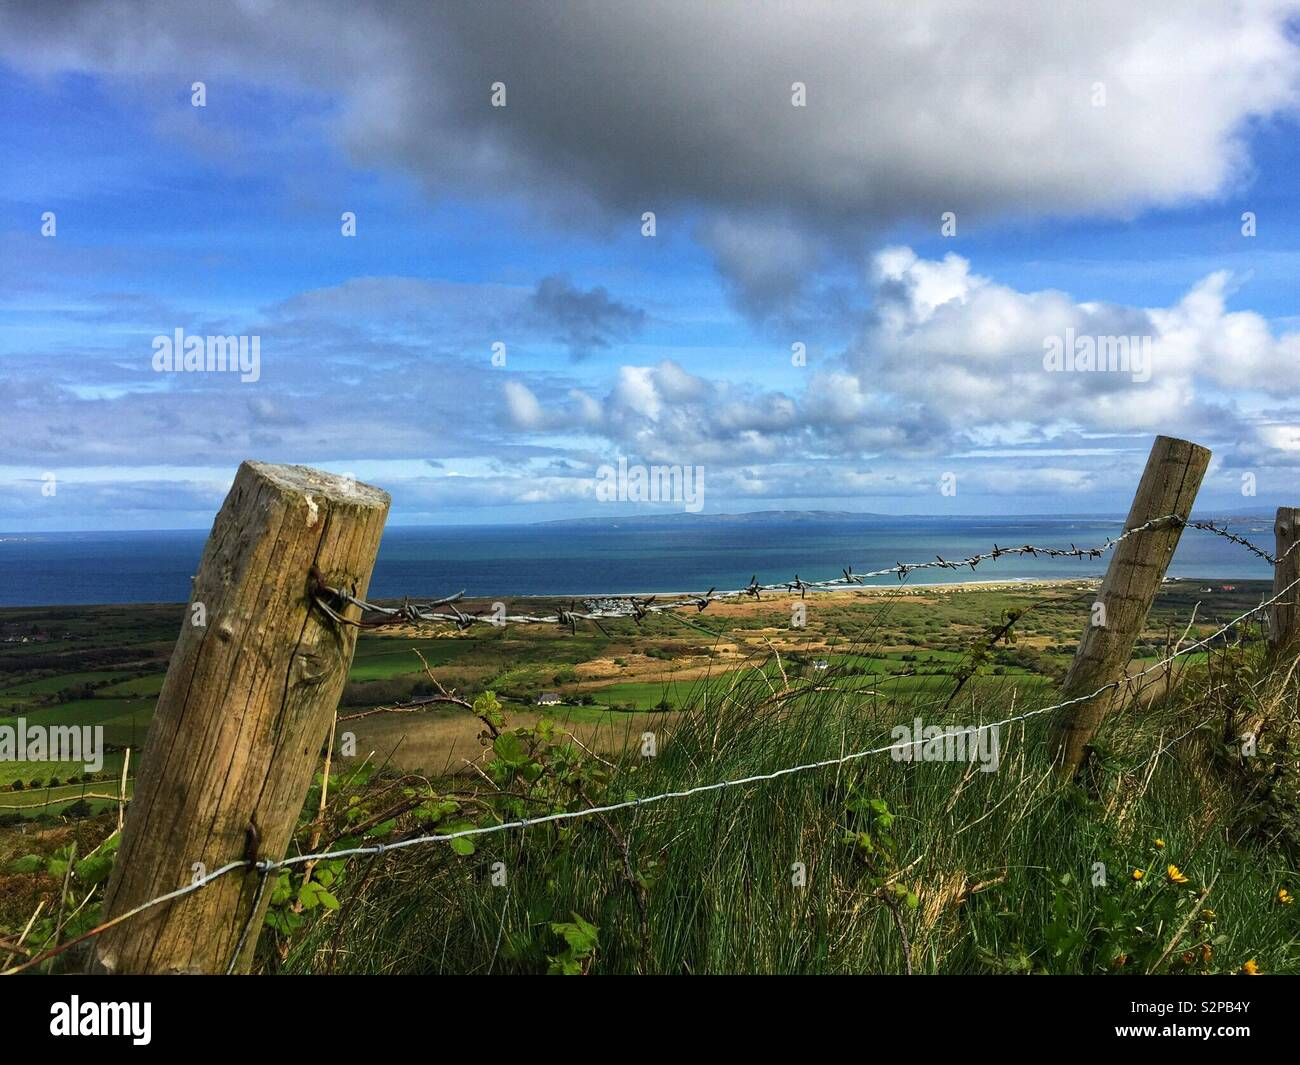 View over the fence - Stock Image